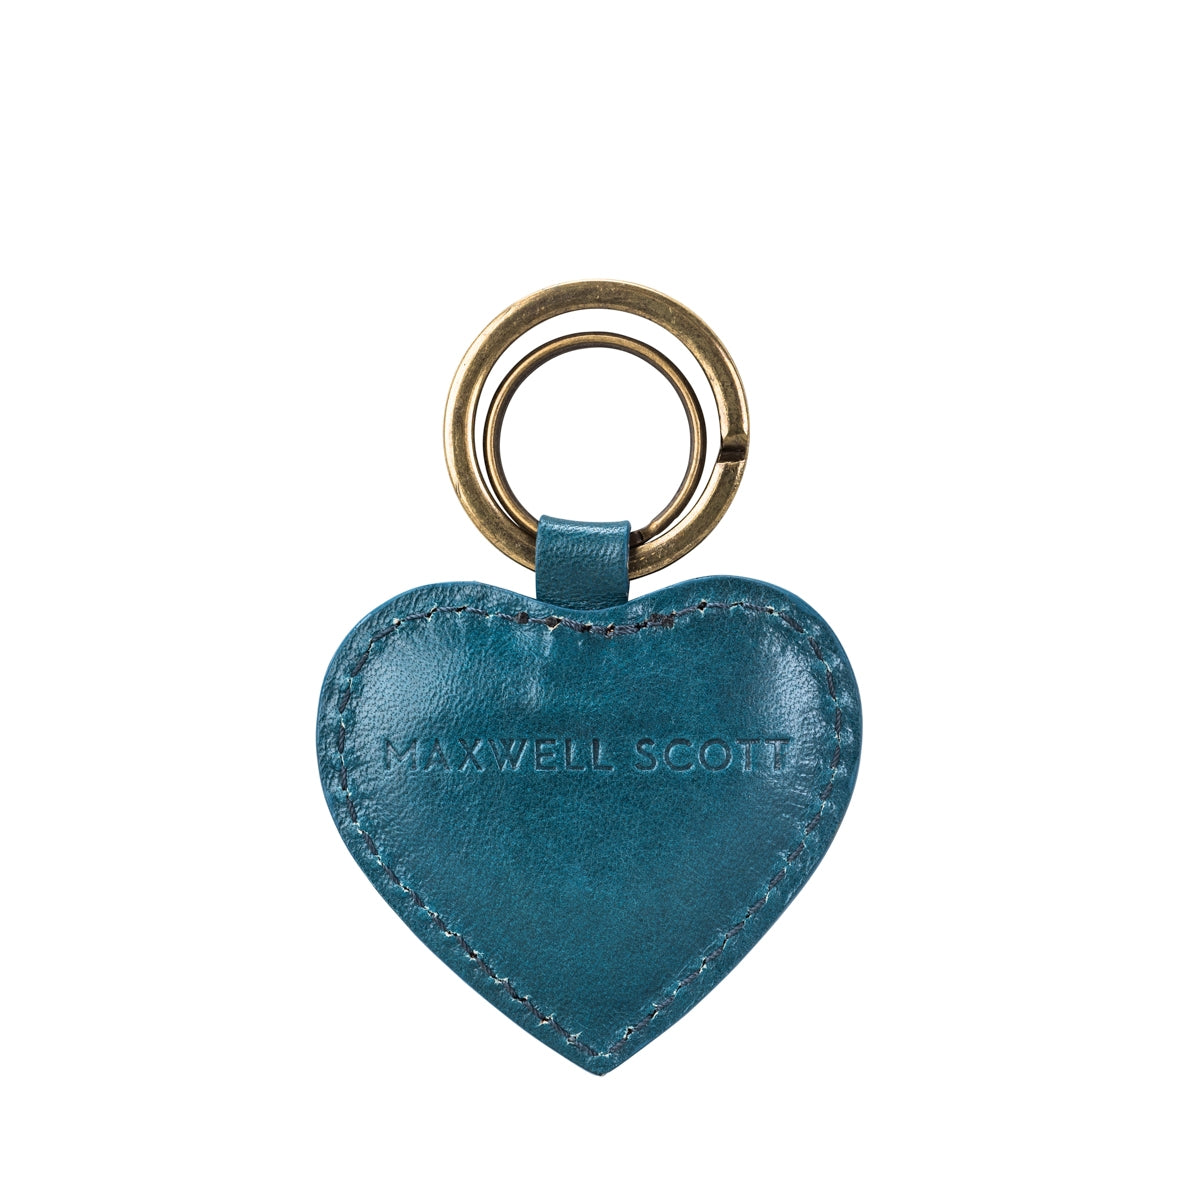 Image 4 of the 'Mimi' Leather Heart Key Ring